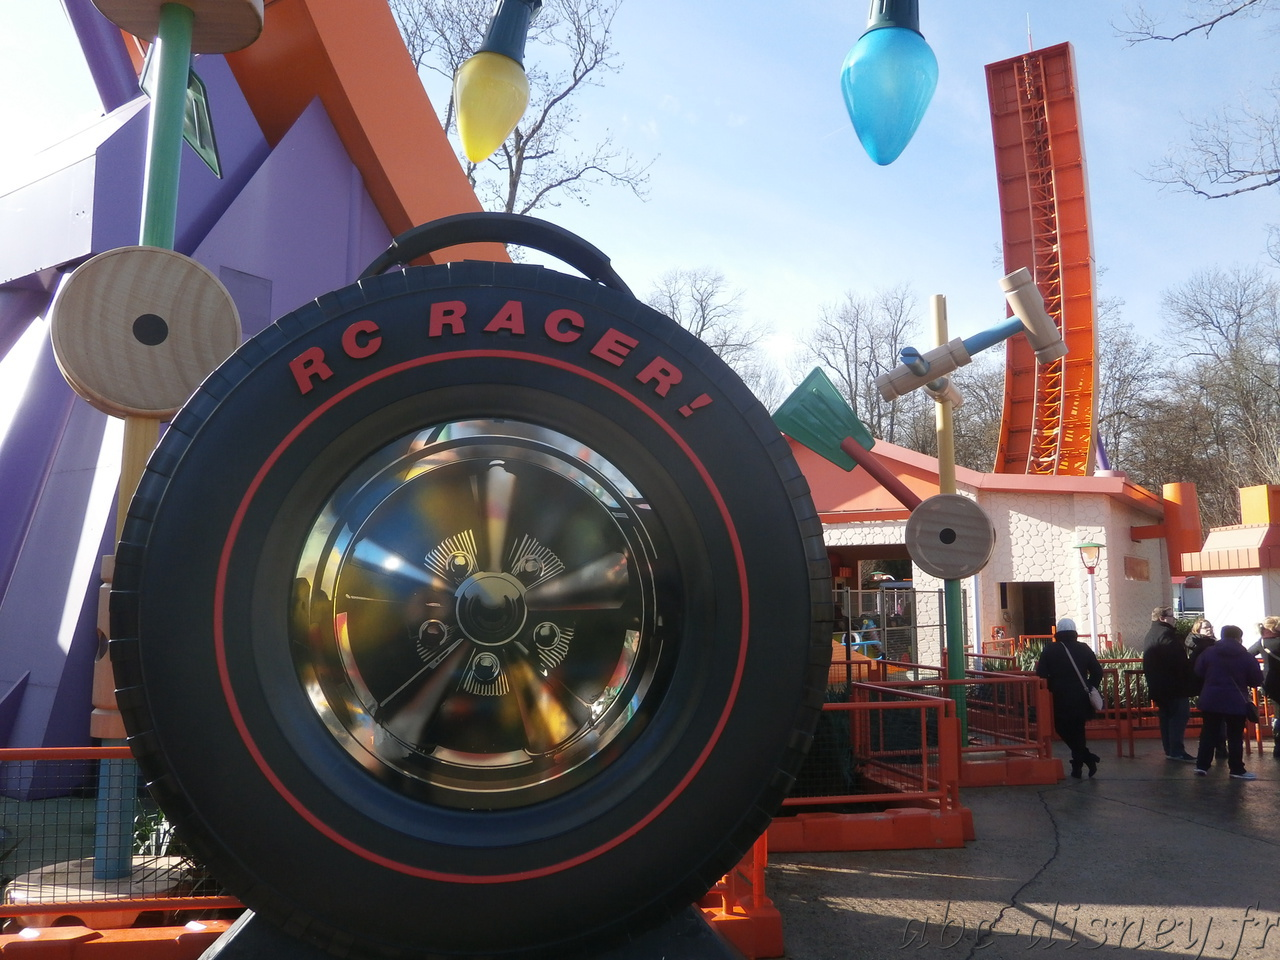 A RC racer 7